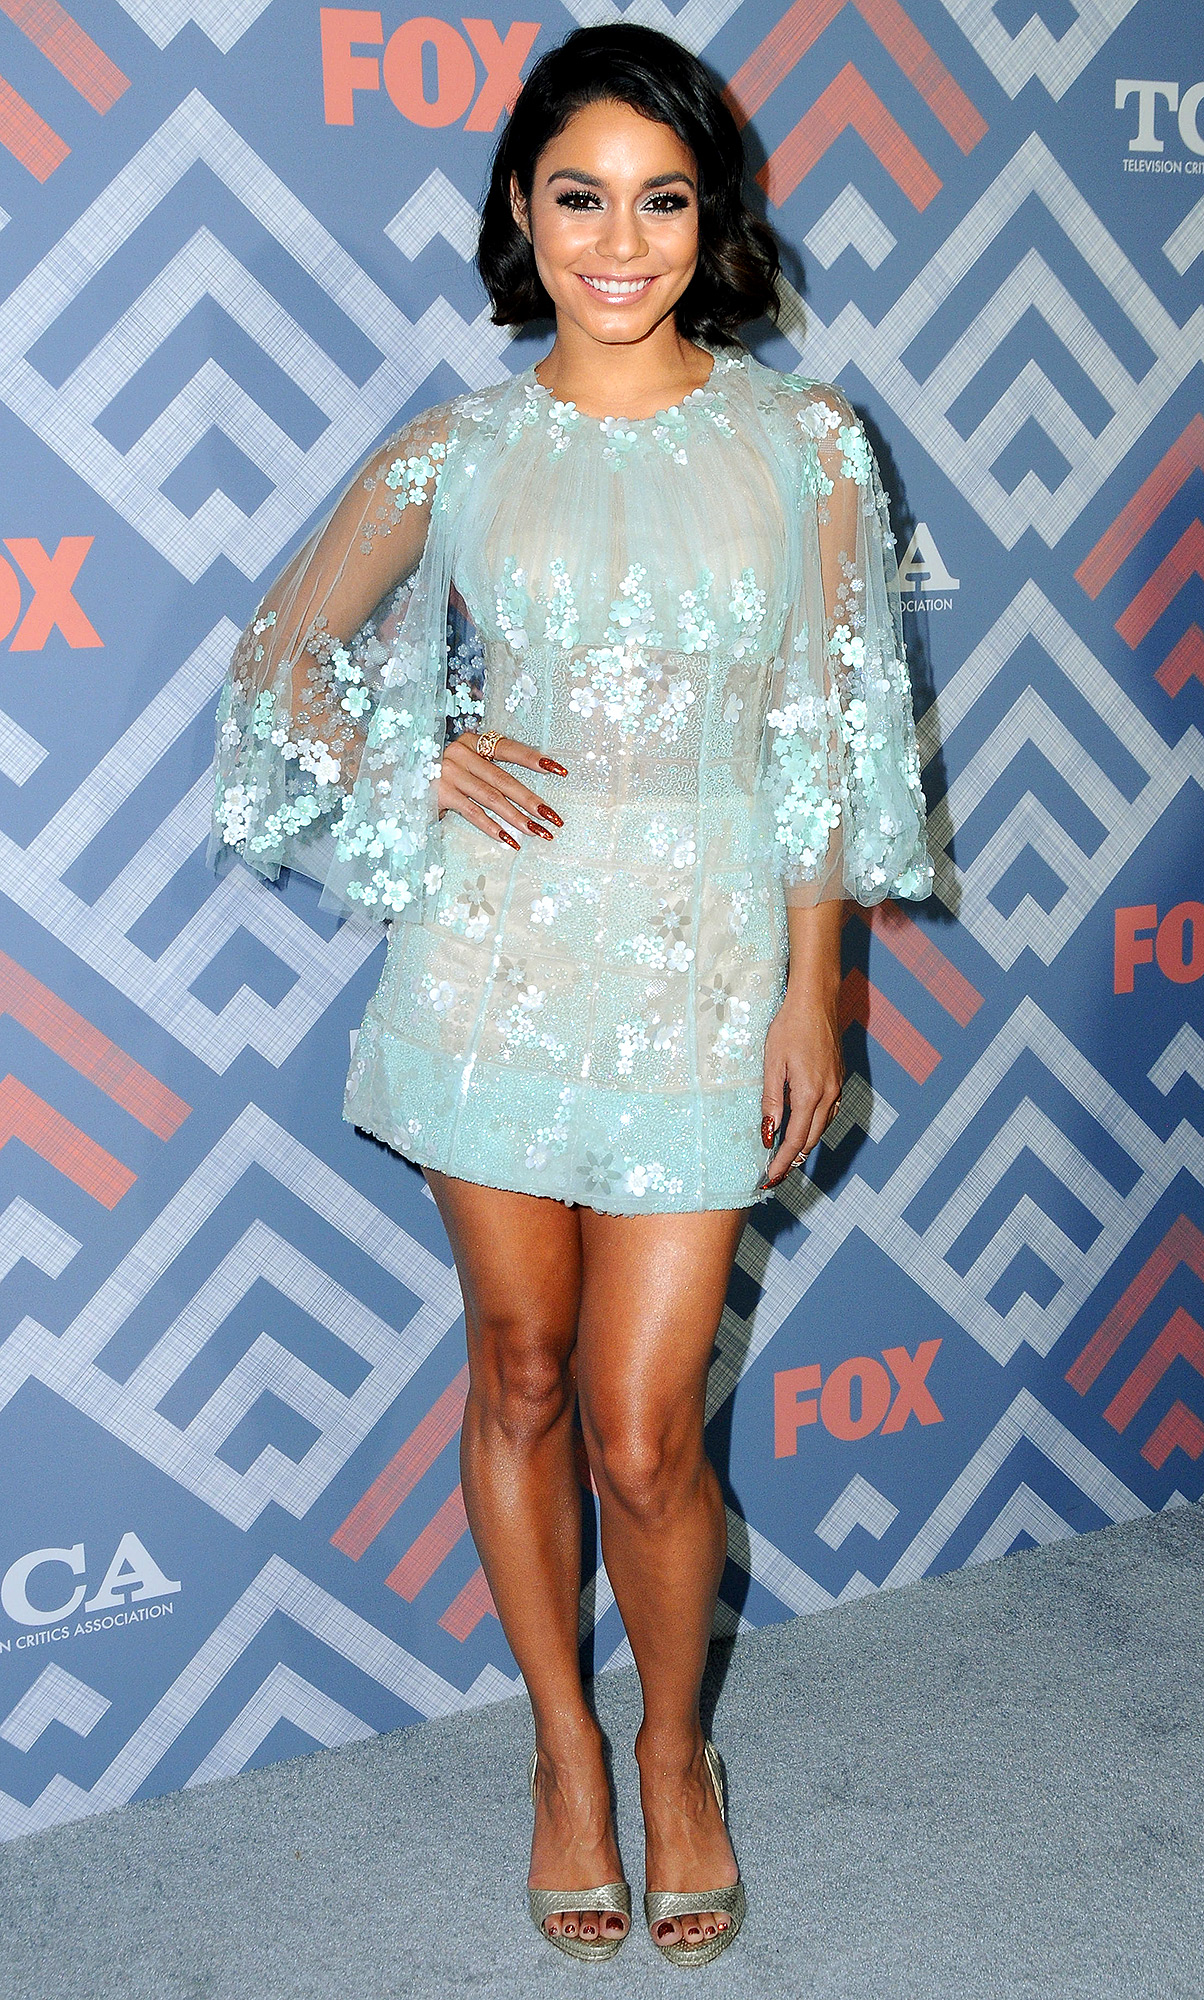 Stars arrive at the 2017 FOX Summer TCA party in Los Angeles